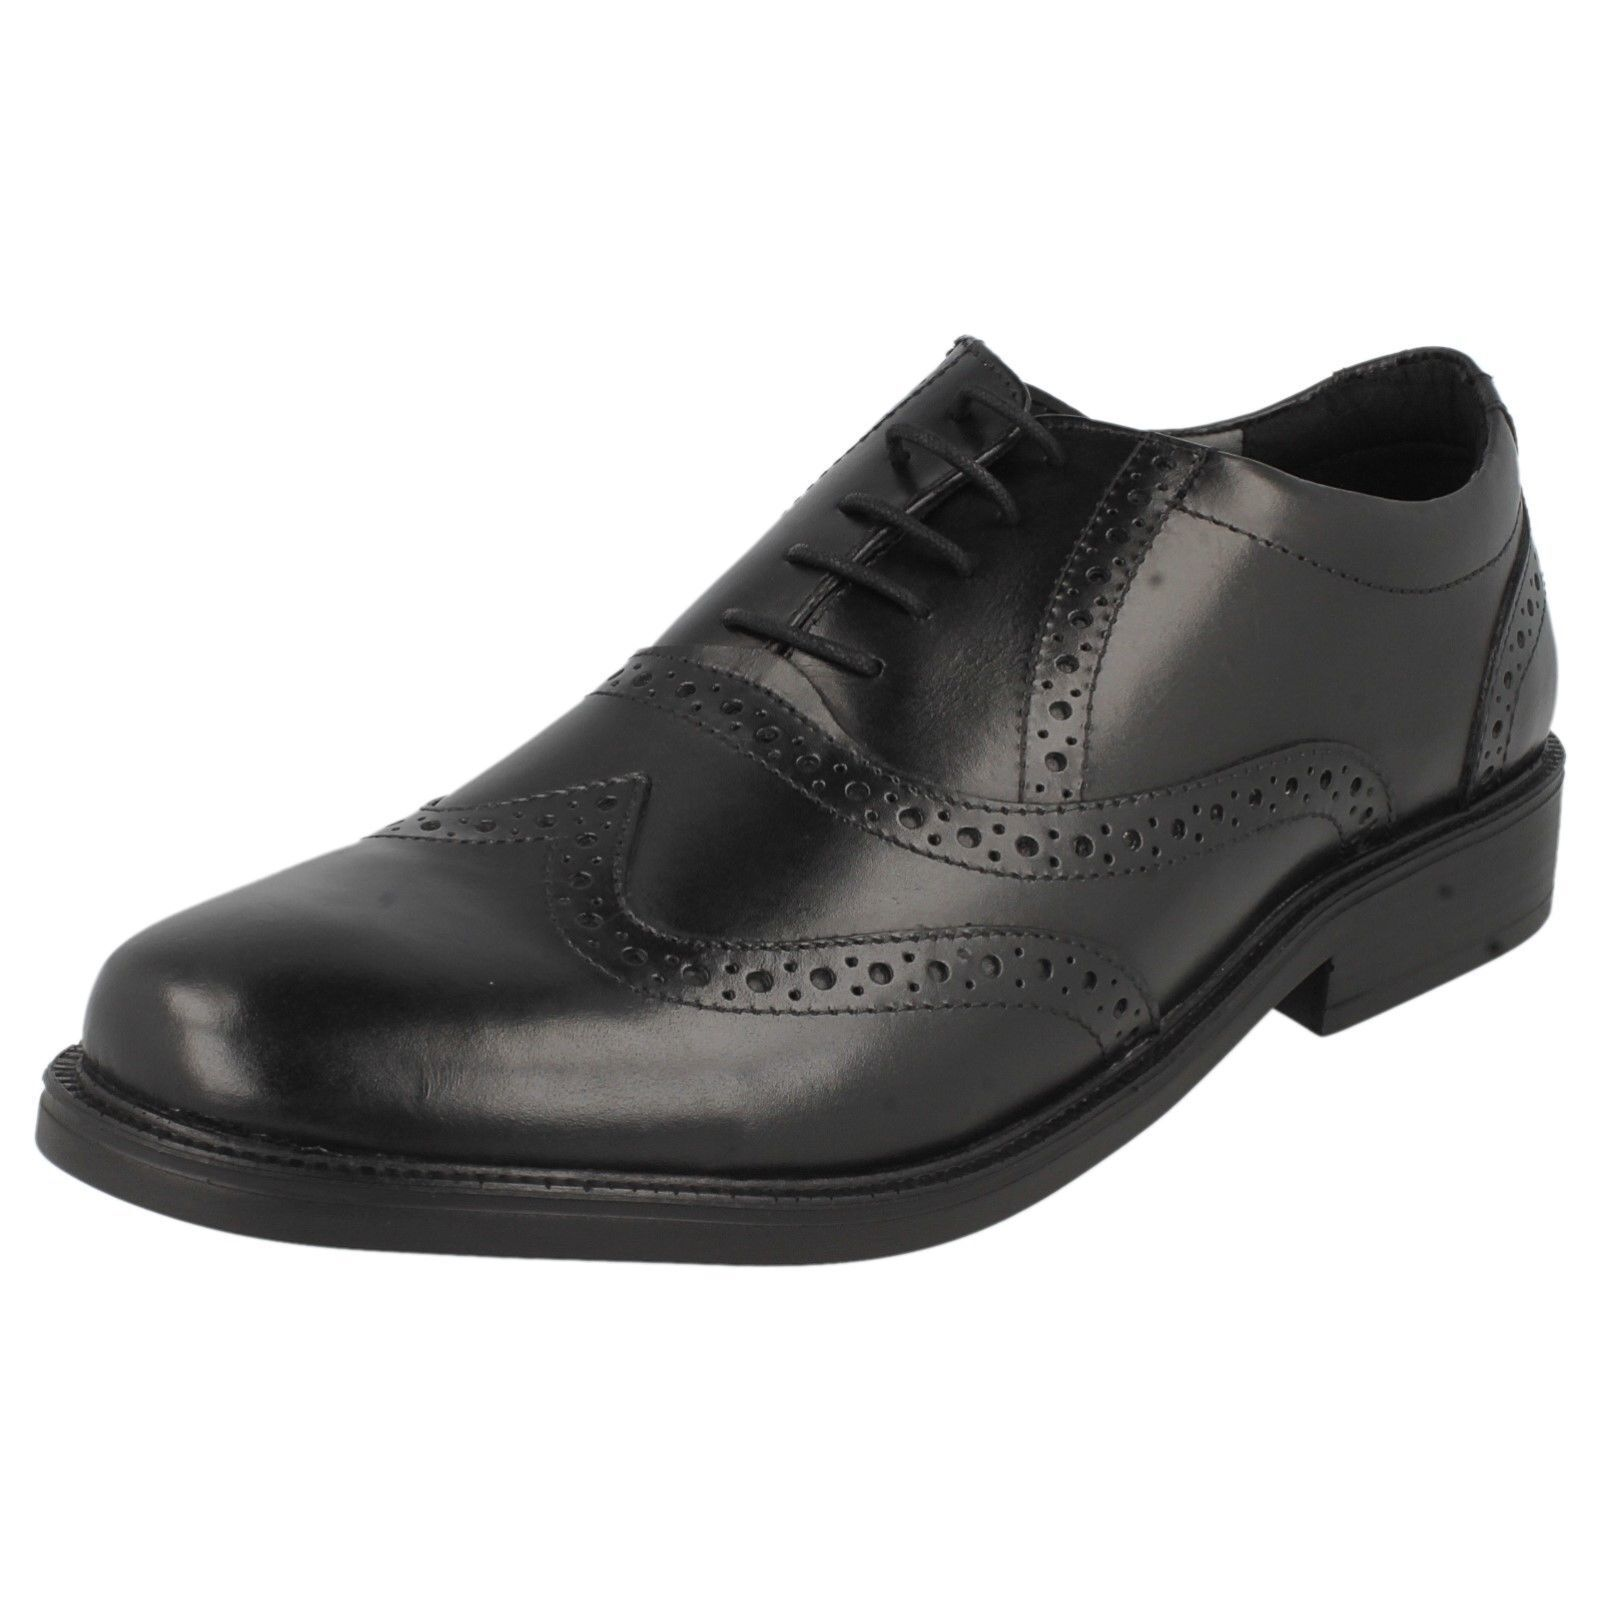 Herren HUSH UP PUPPIES ROCKFORD BROGUE LACE UP HUSH WORK FORMAL LEATHER SMART WIDE Schuhe 1dc8f4